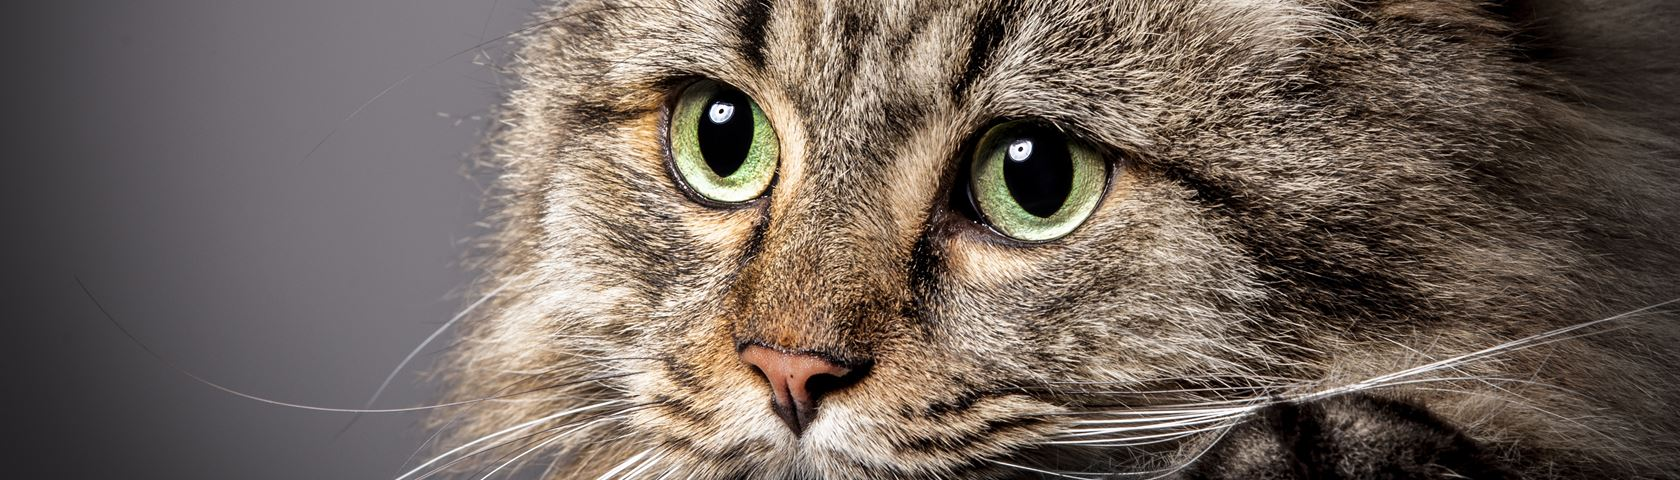 Portrait of a Tabby